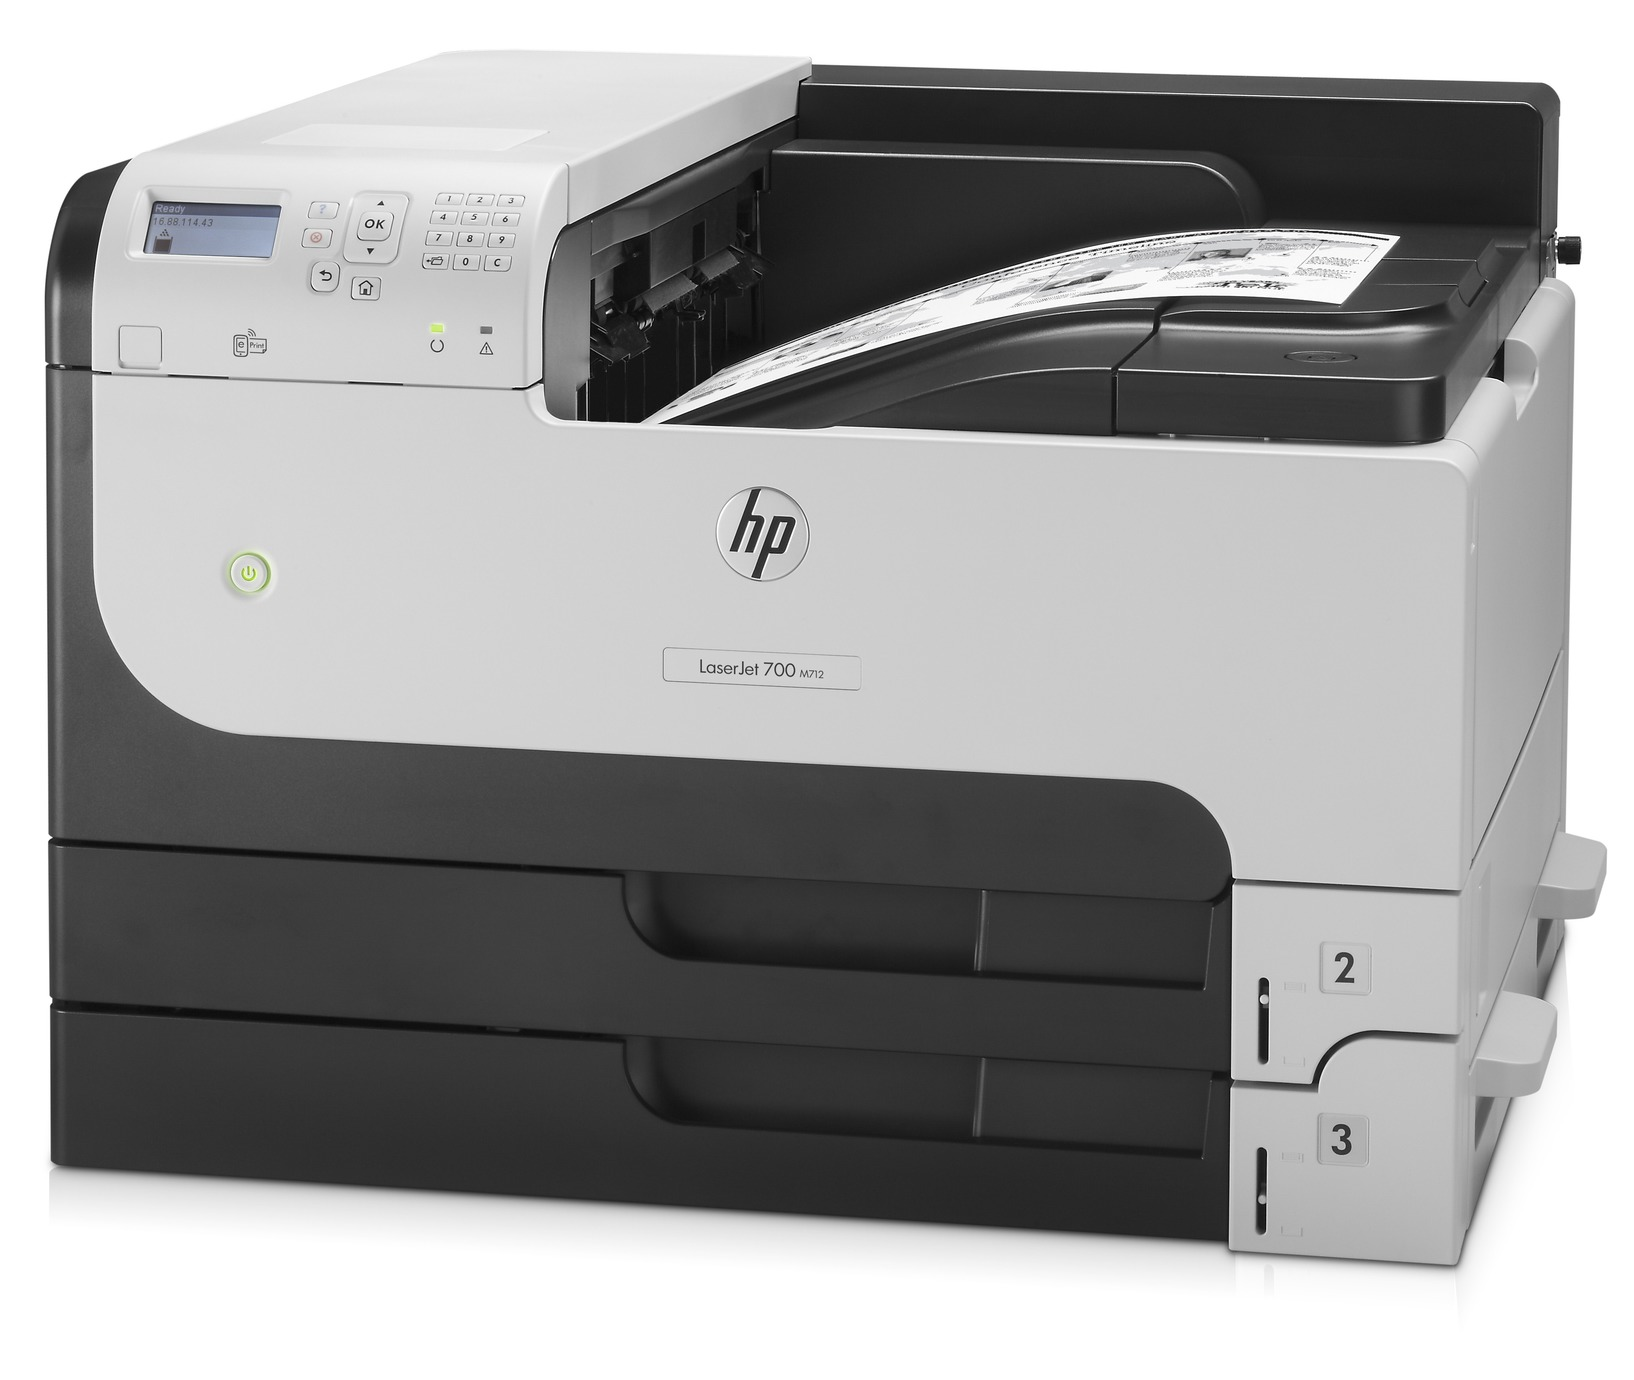 hp-laserjet-enterprise-700-m712dn.jpg